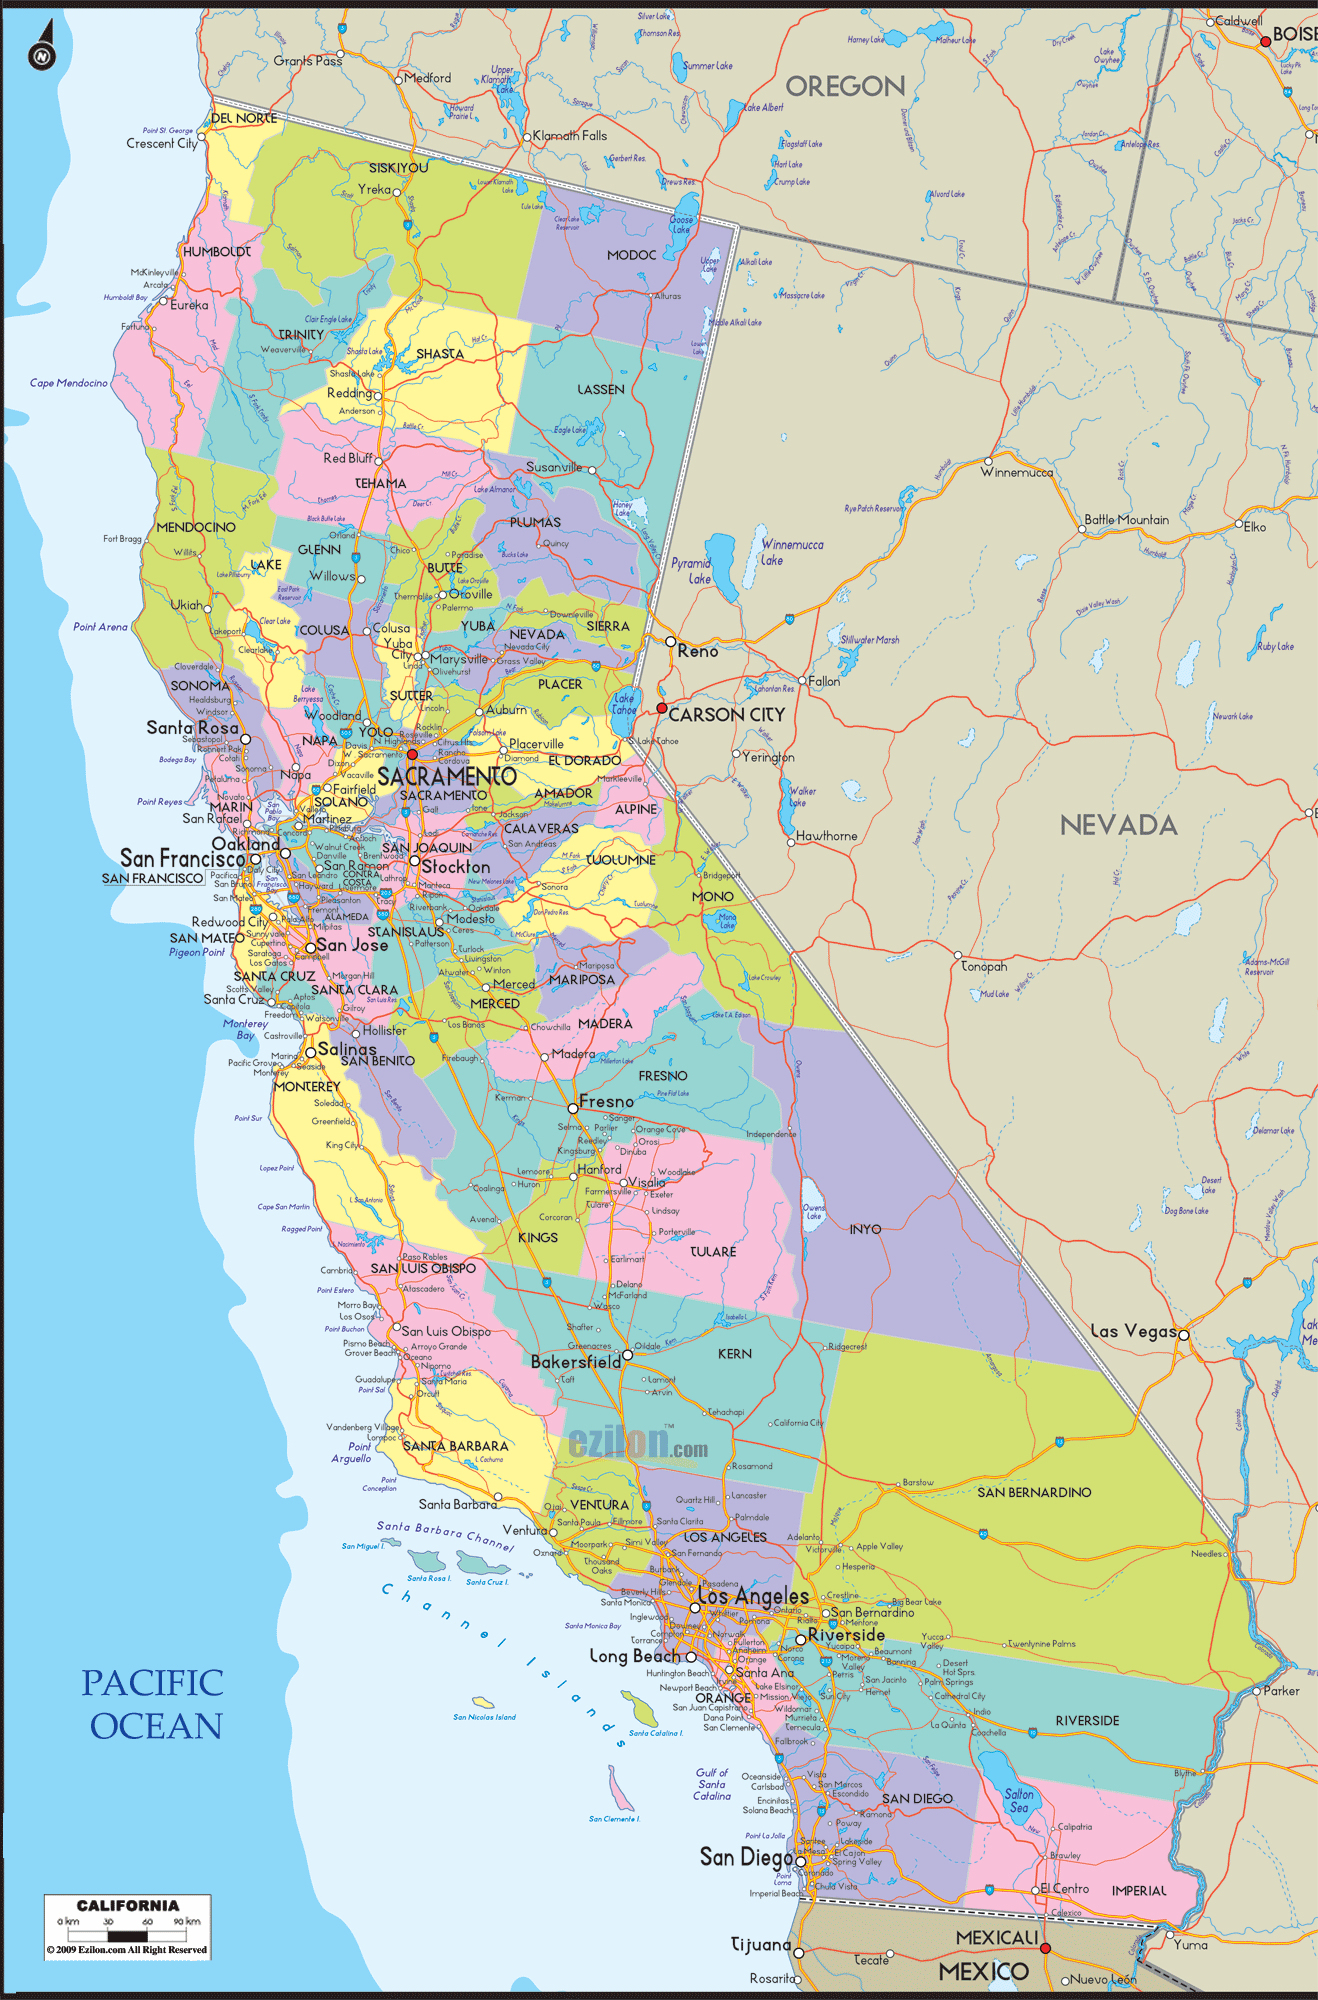 California County Map With Roads Google Maps California California - California County Map With Roads